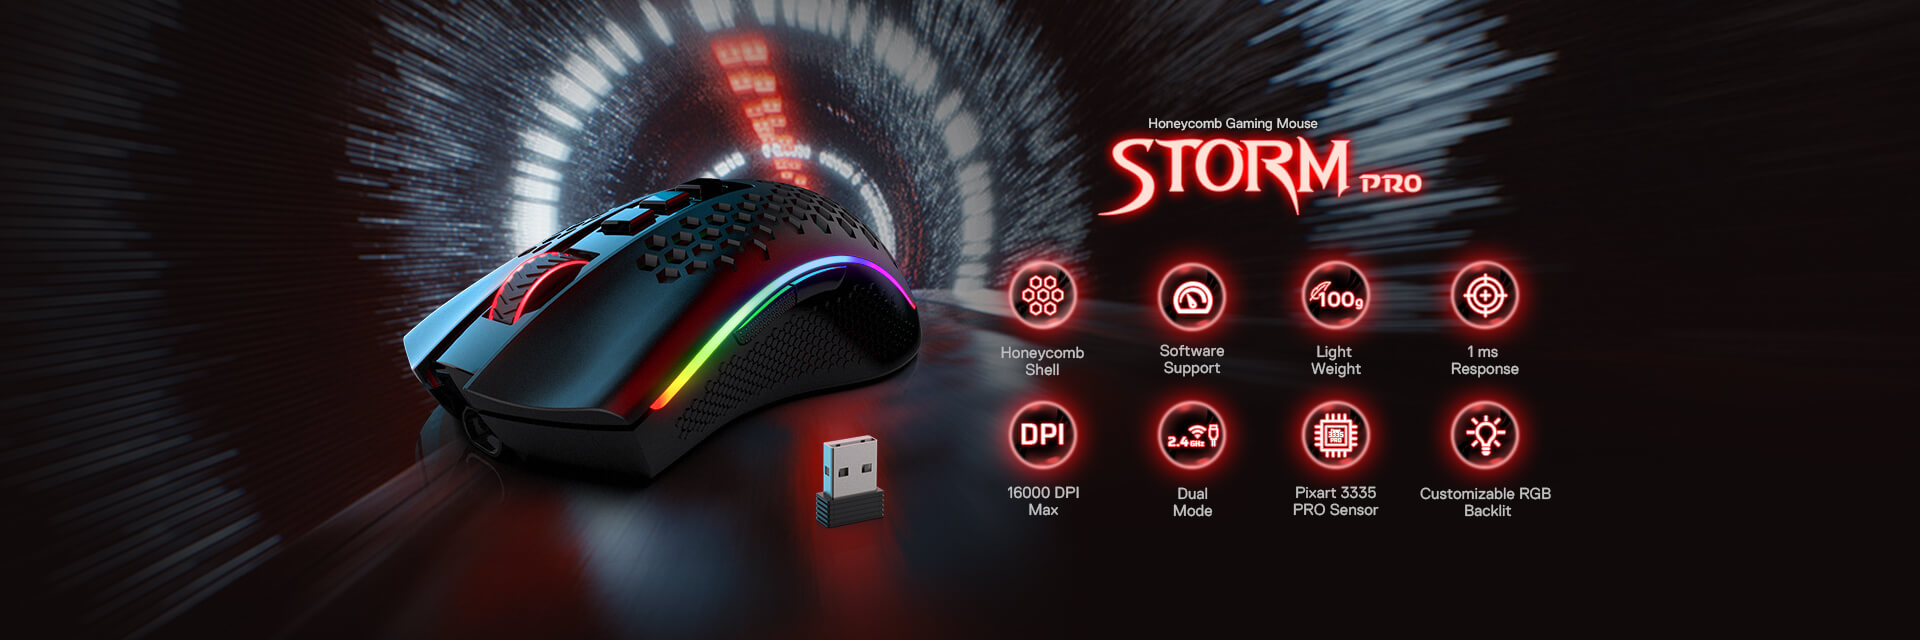 Redragon M808 Storm Pro Wireless Gaming Mouse